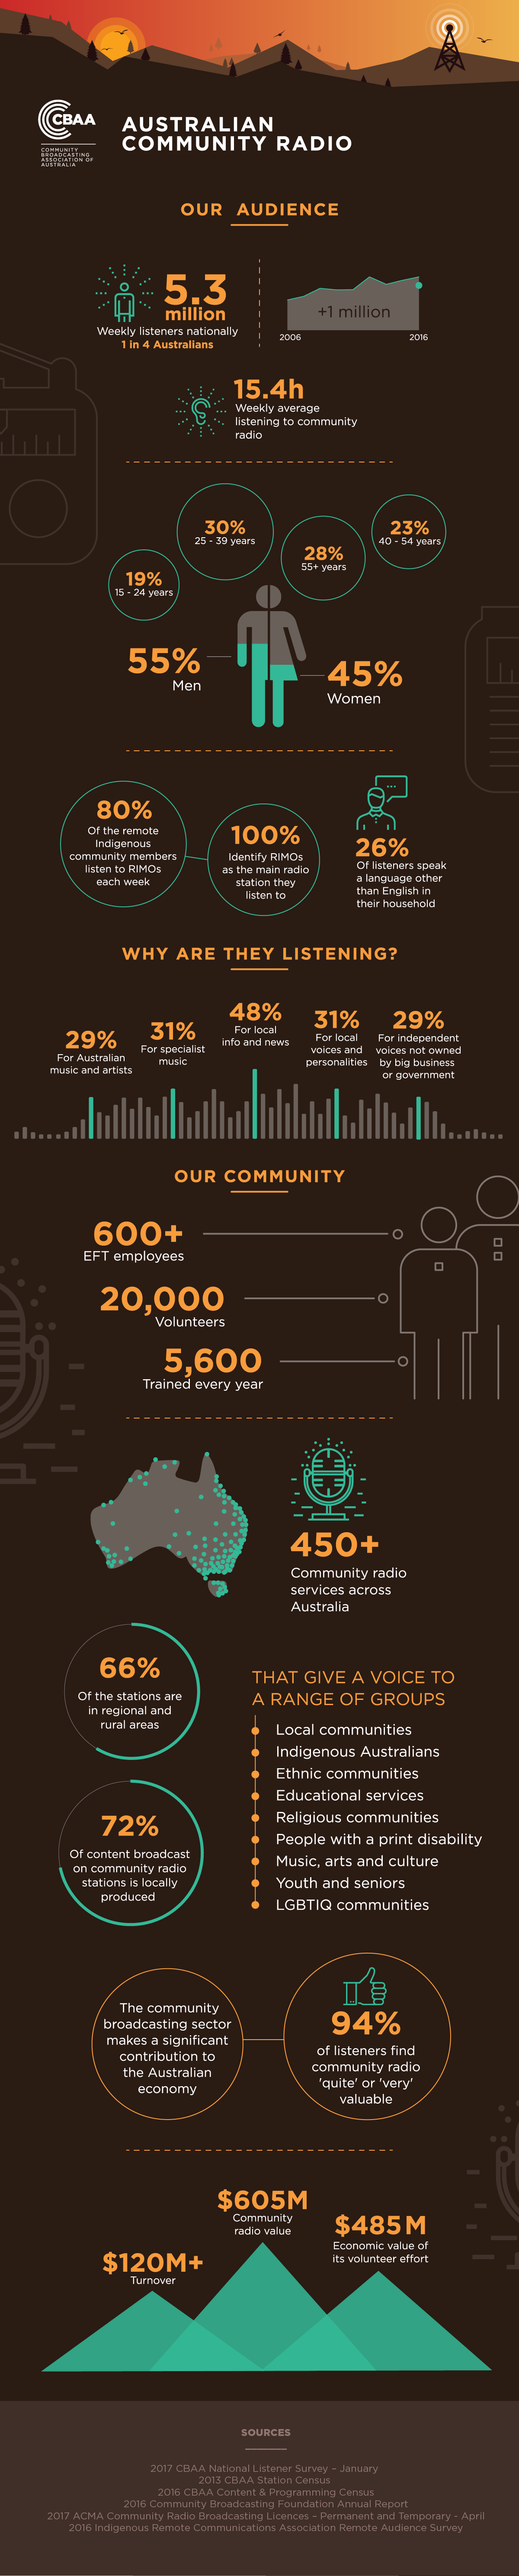 Community Radio Infographic